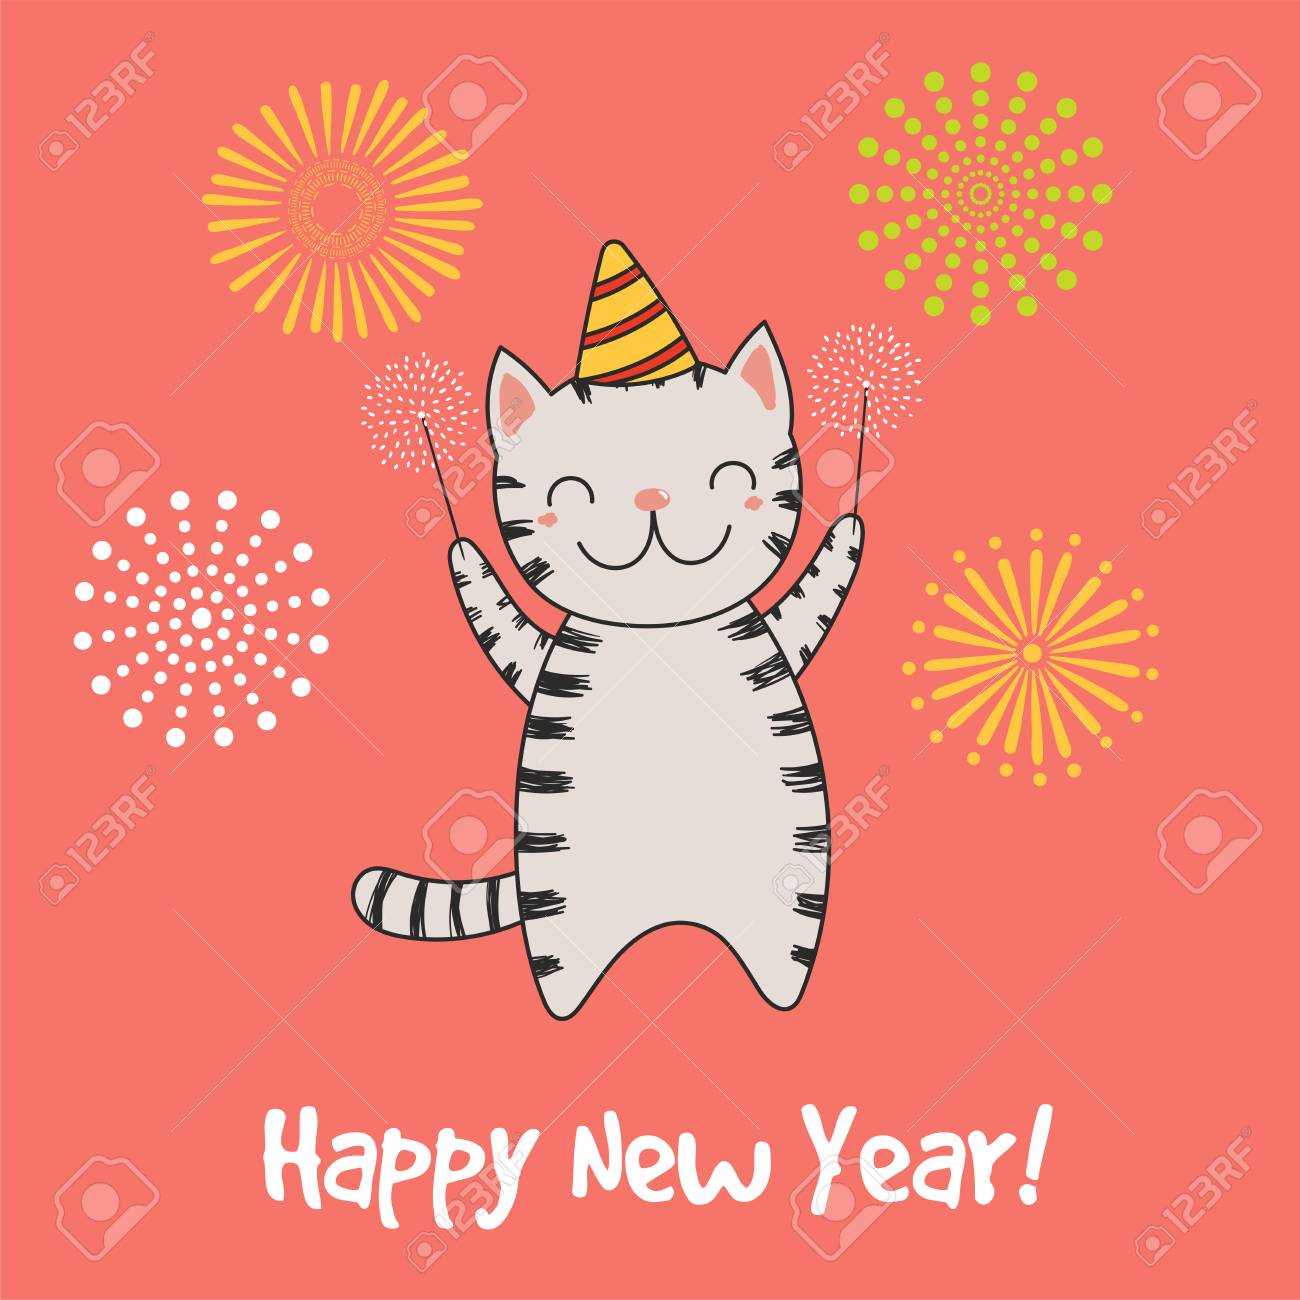 Hand drawn happy new year greeting card with cute funny cartoon hand drawn happy new year greeting card with cute funny cartoon stock vector 91655411 m4hsunfo